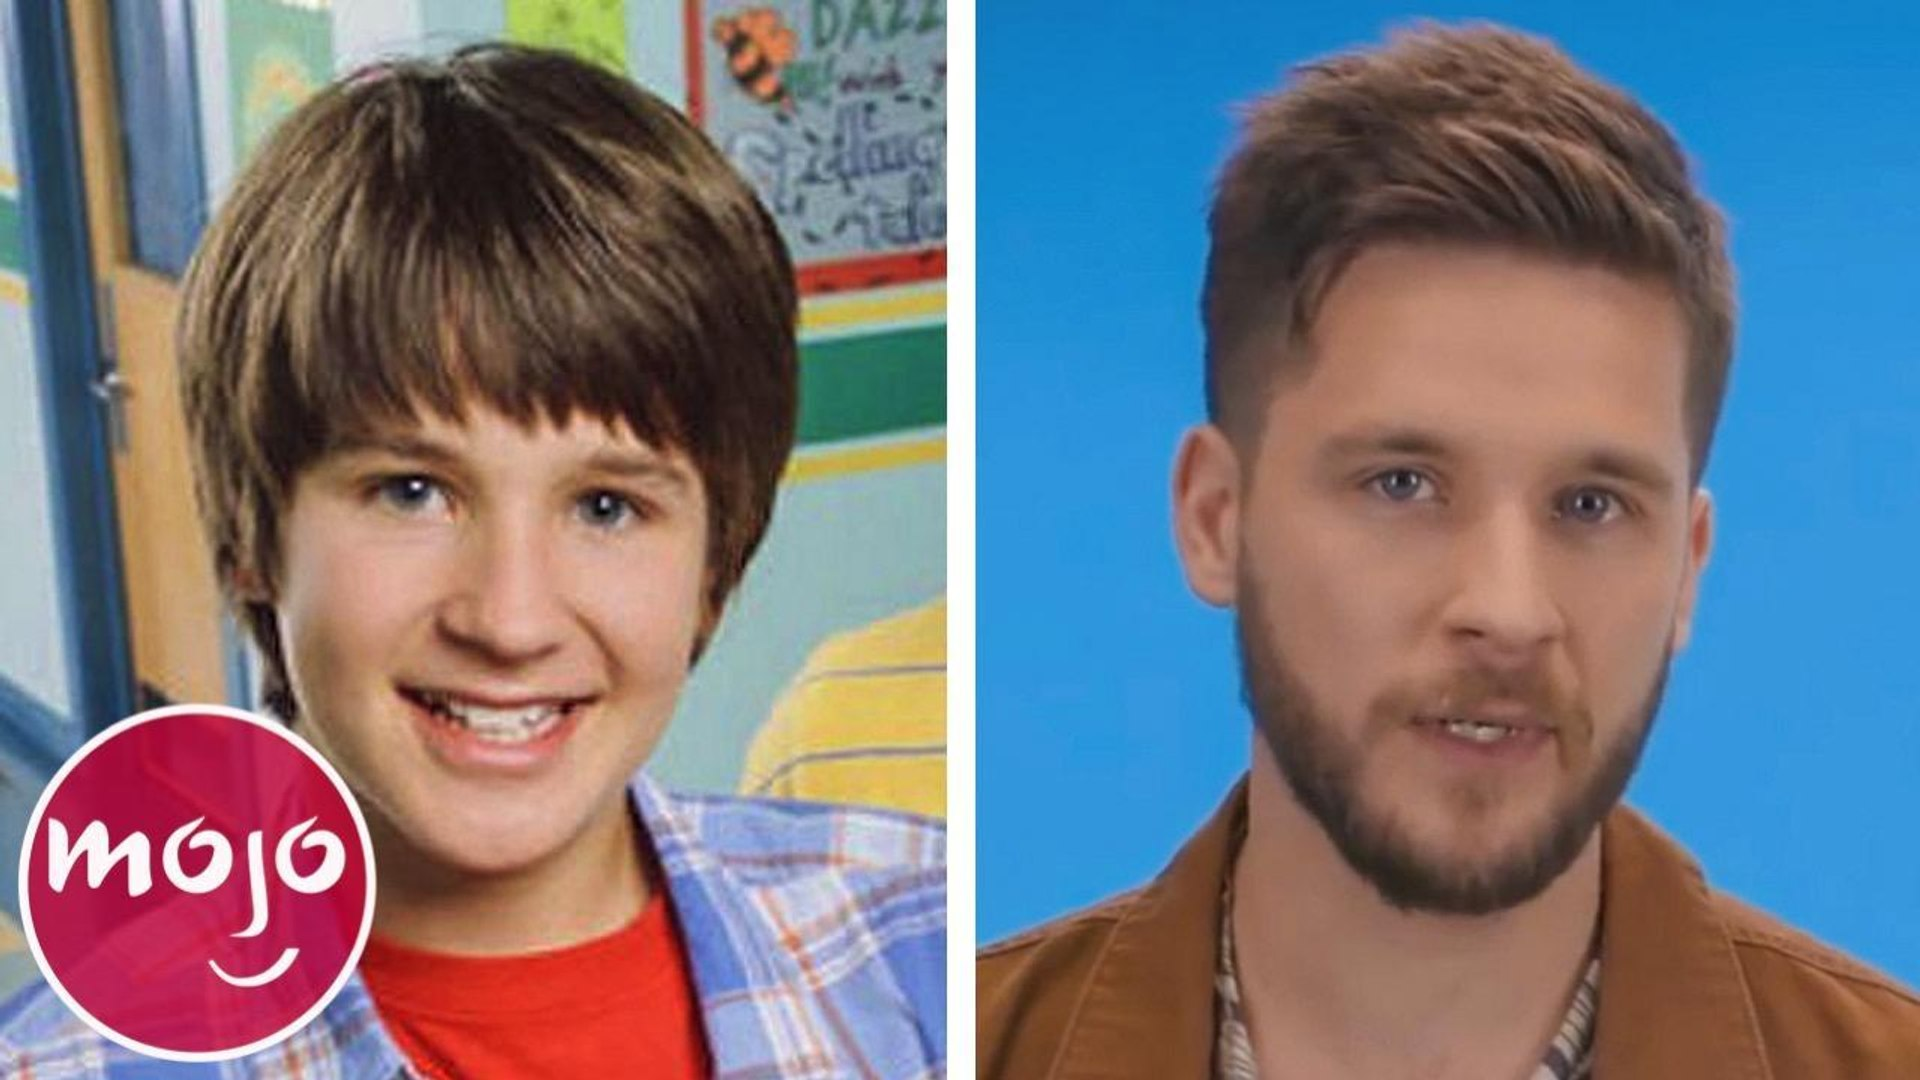 Ned S Declassified Cast Where Are They Now Video Dailymotion